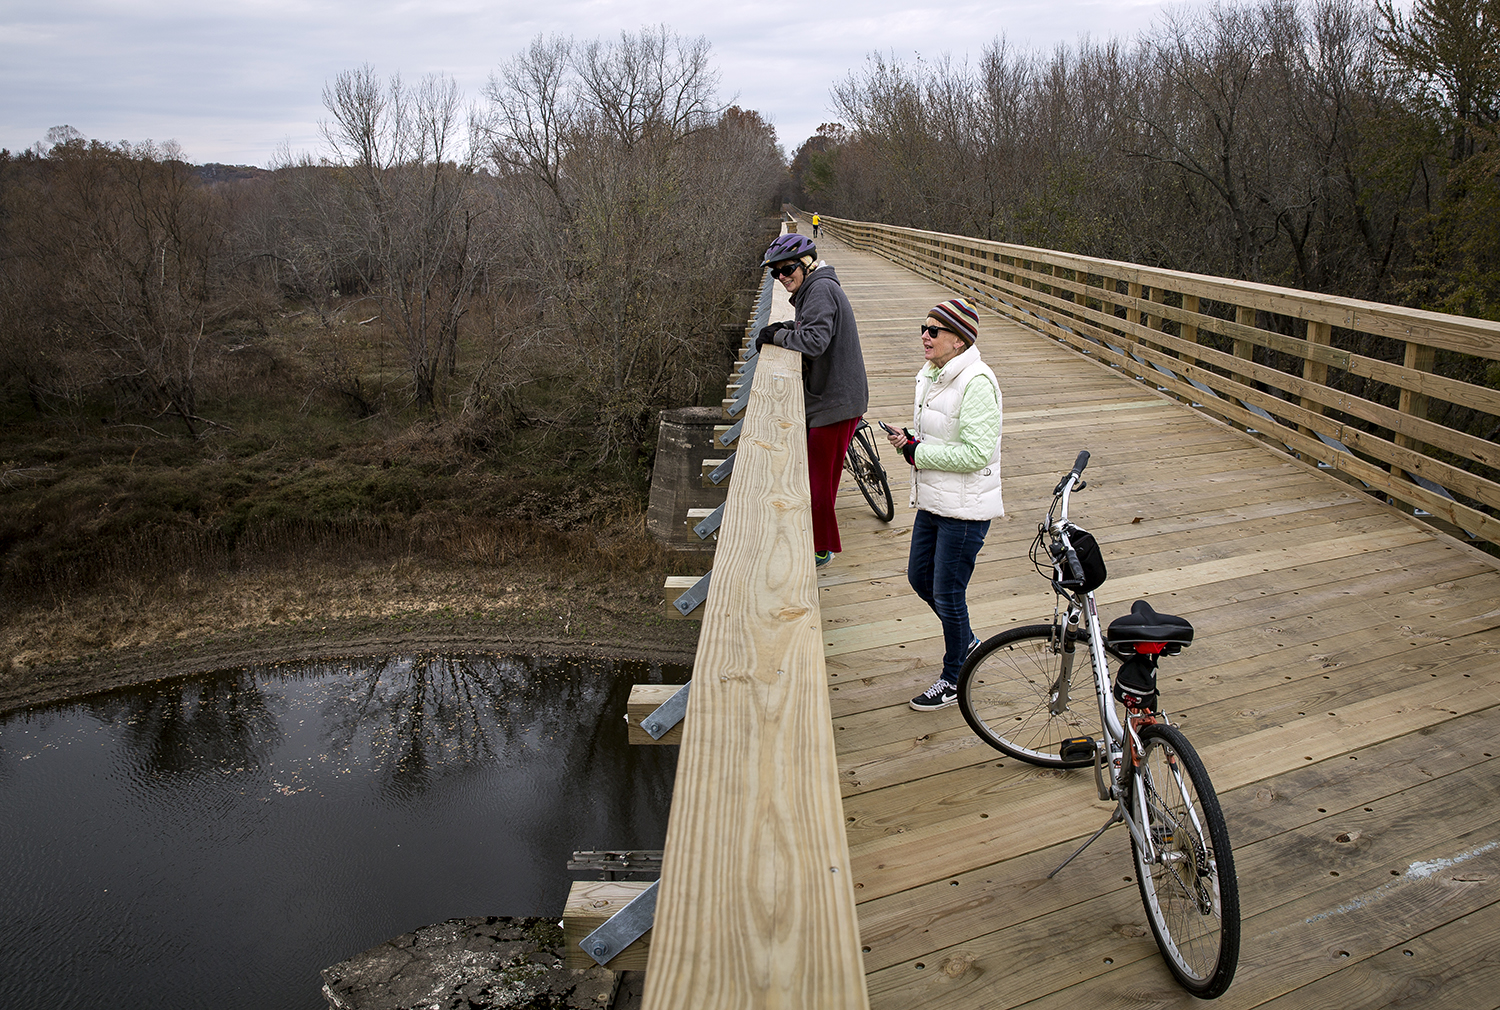 Therese Talmant, left, and Donna Wilson take in the view of the Sangamon River during a bike ride on the Sangamon Valley Trail extension Tuesday, Nov. 14, 2017, in Springfield, Ill. The trail officially opens Thursday with a ribbon cutting ceremony. [Rich Saal/The State Journal-Register]